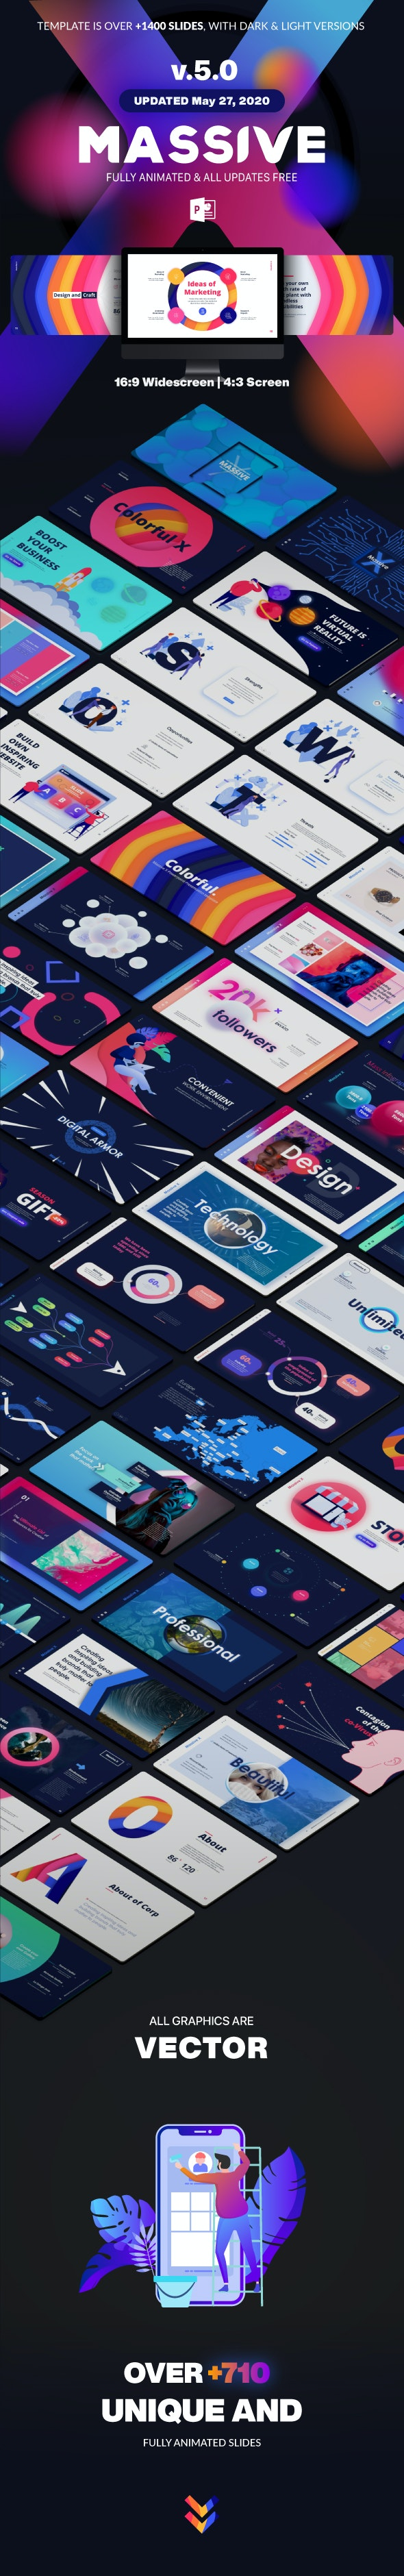 Massive X Presentation Template v.5.0 Fully Animated - Business PowerPoint Templates